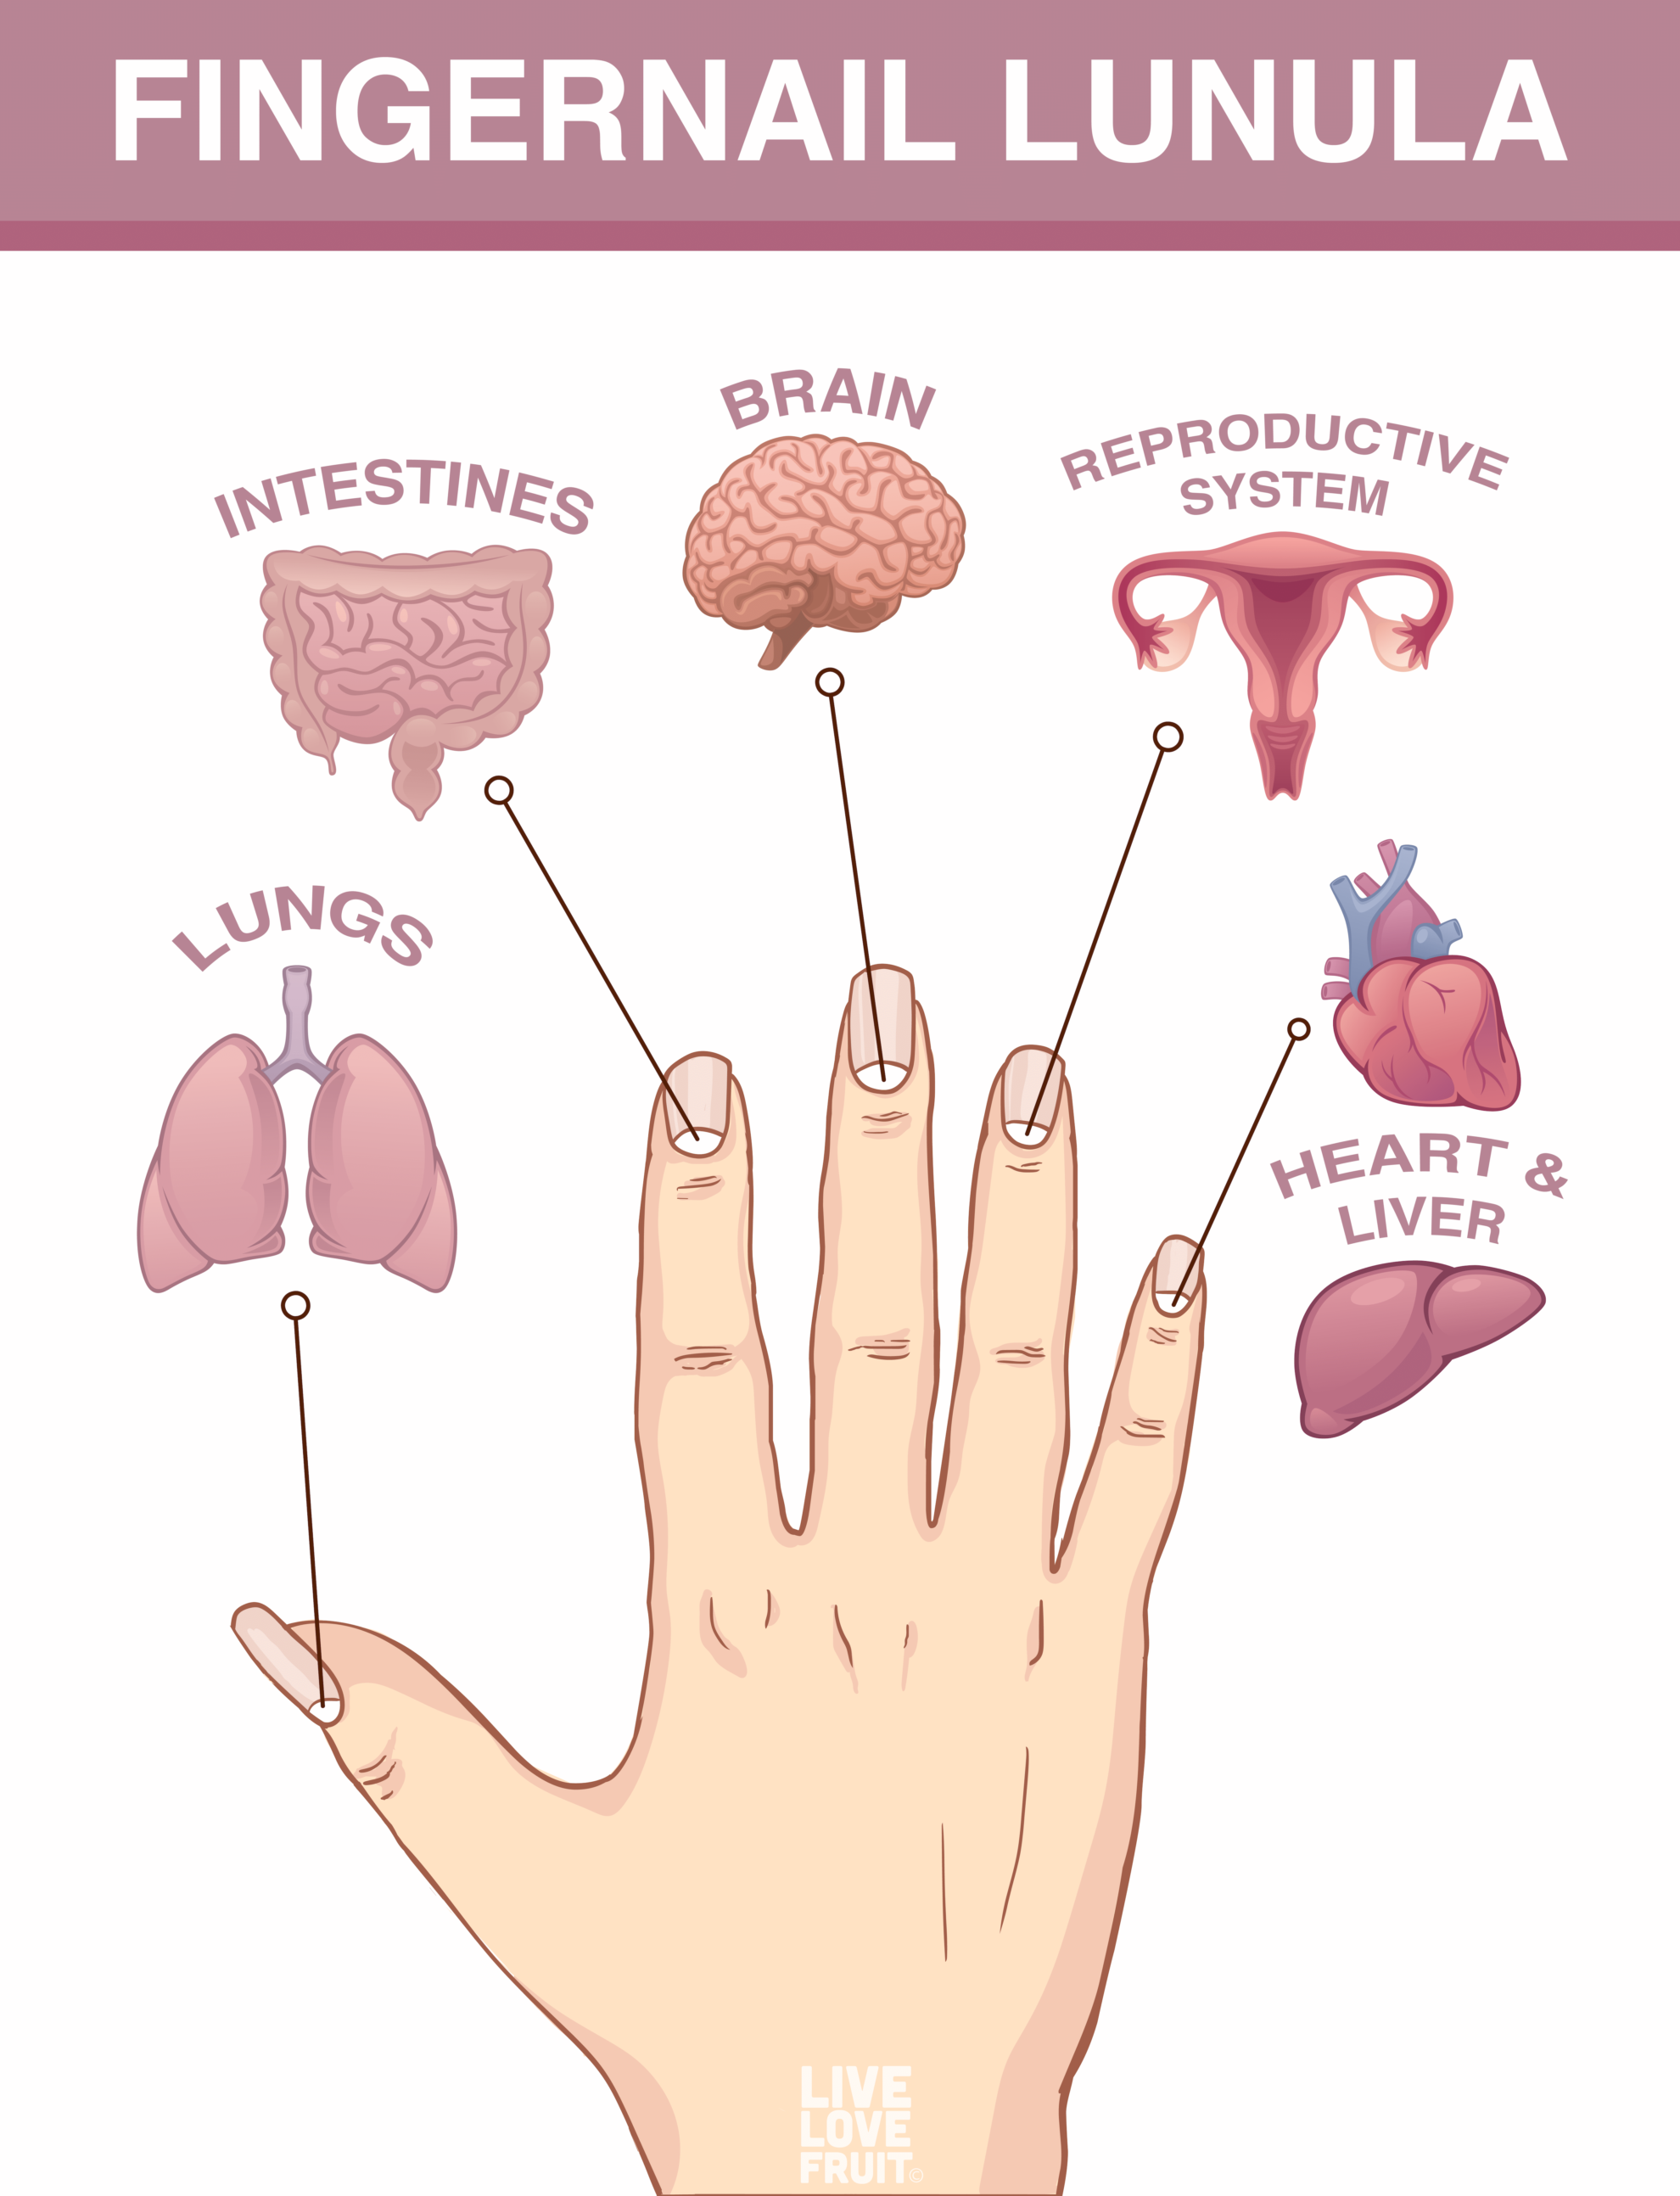 Fingernail Lunula: What The Half Moons on Nails Reveal About Your Health